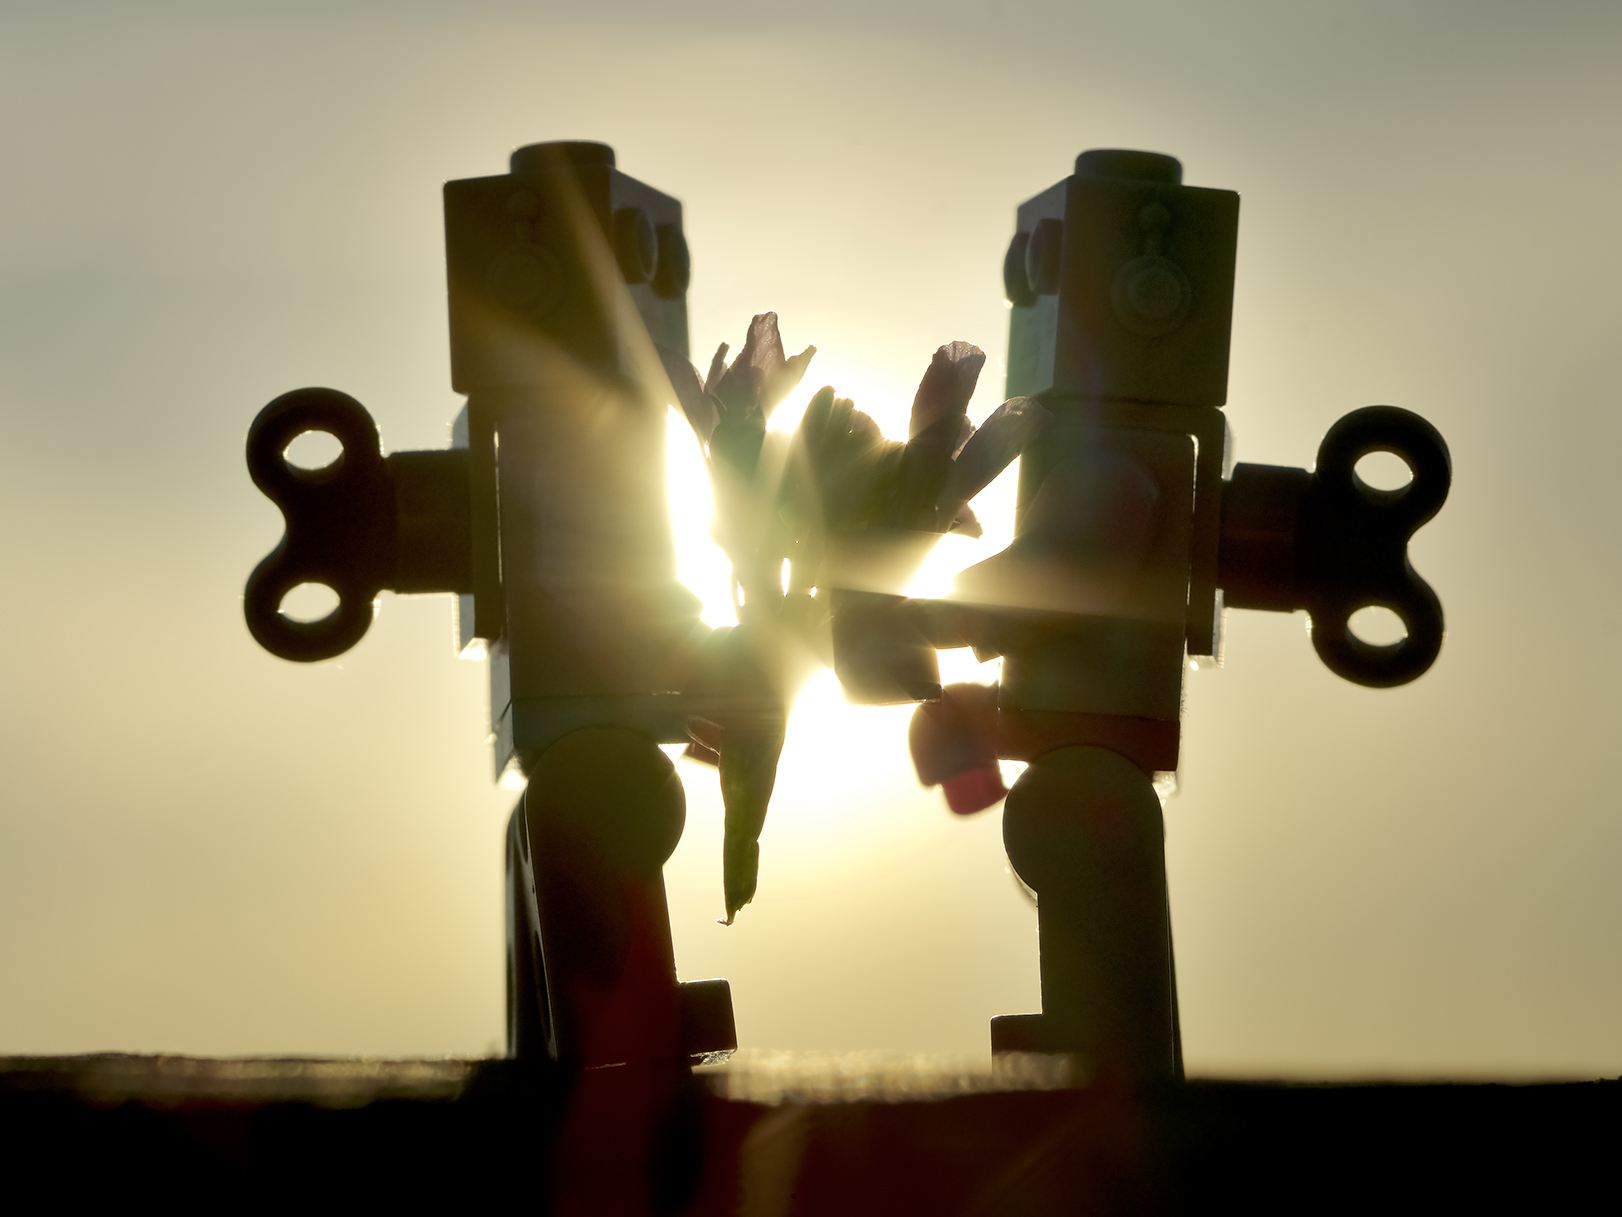 Musing's on Community, Belonging and Toy Photography